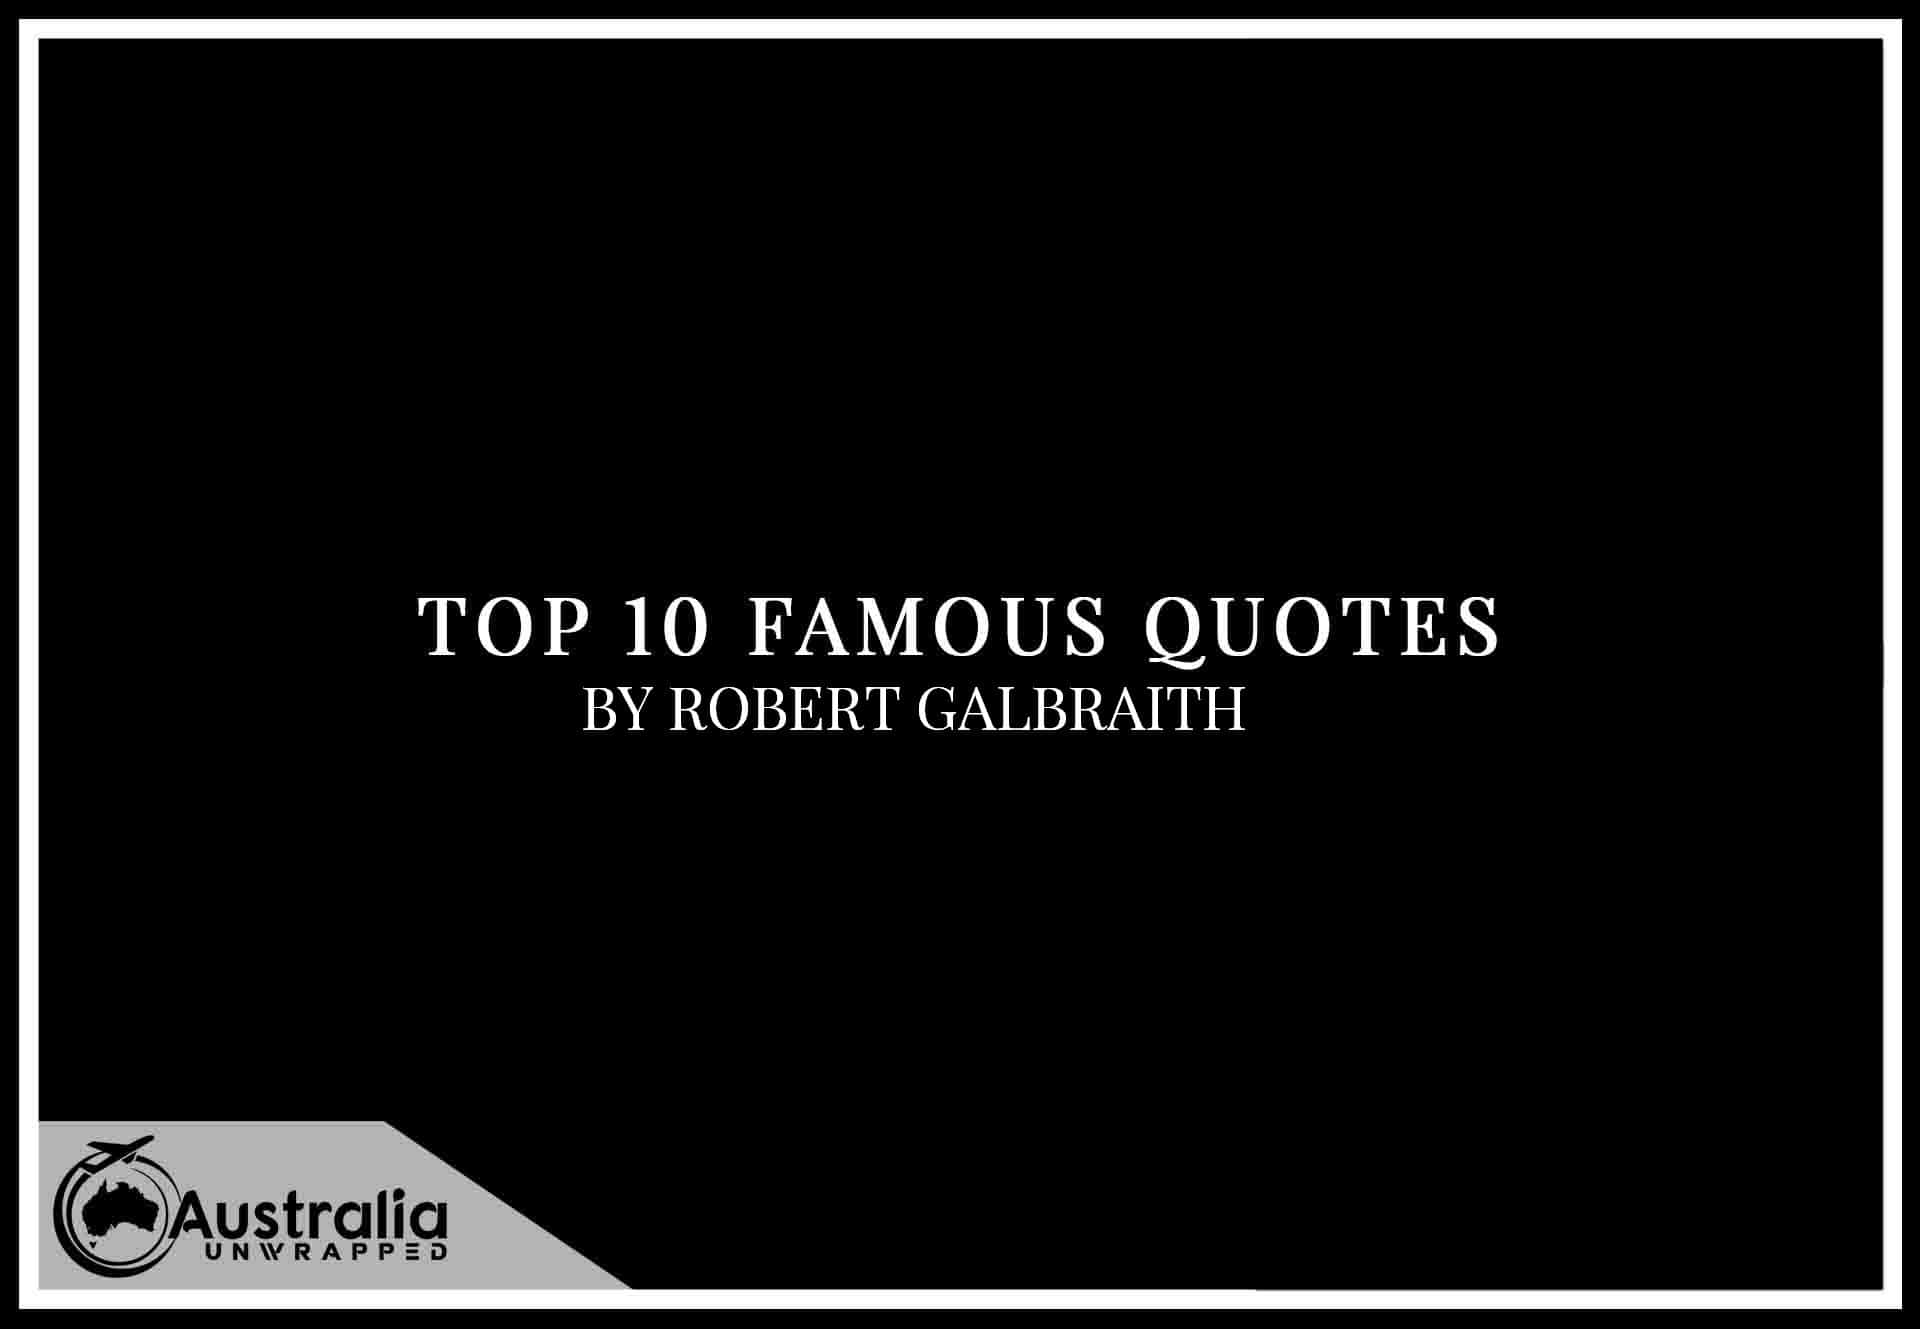 Robert Galbraith's Top 10 Popular and Famous Quotes